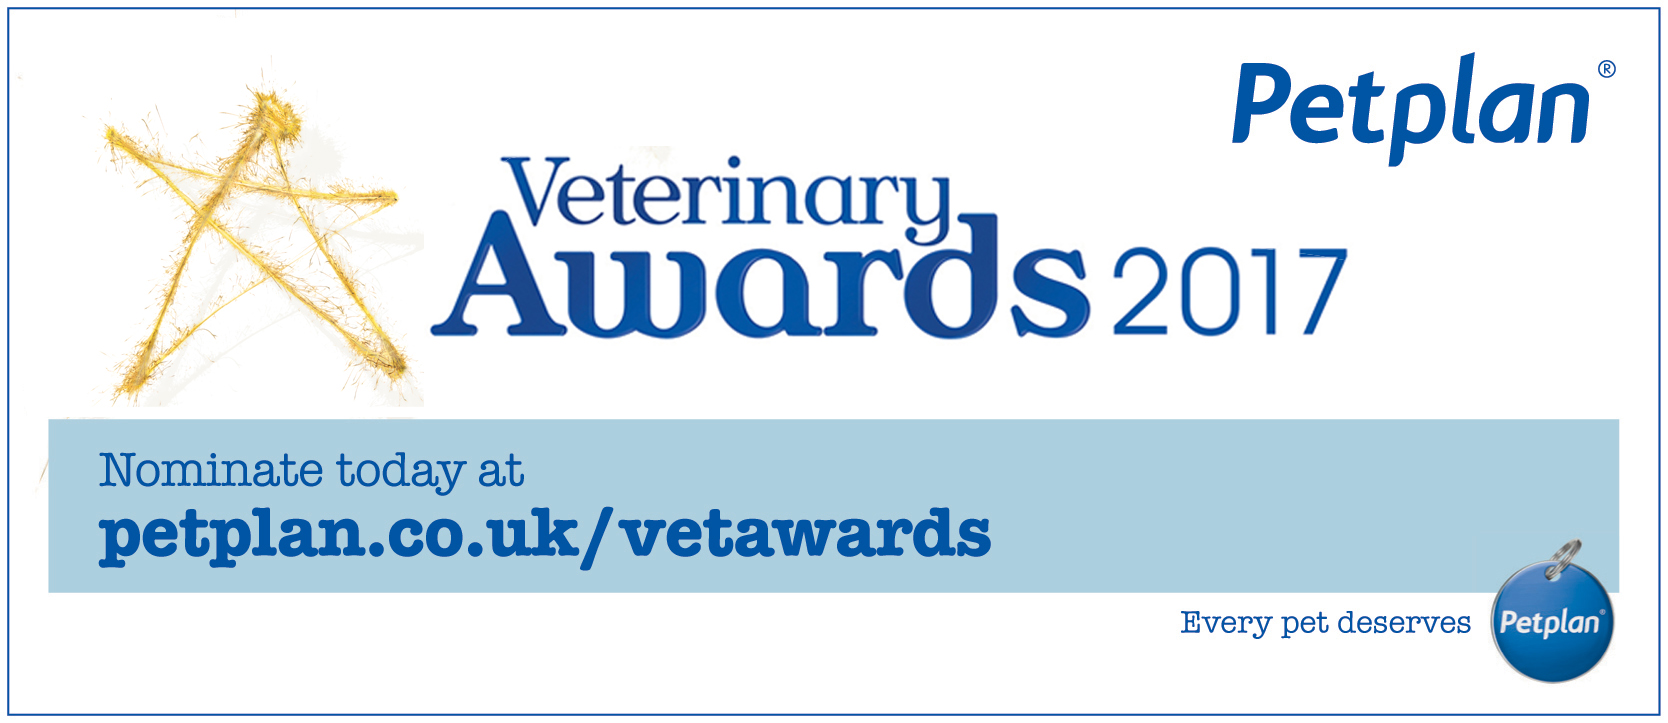 Petplan Veterinary Awards 2017